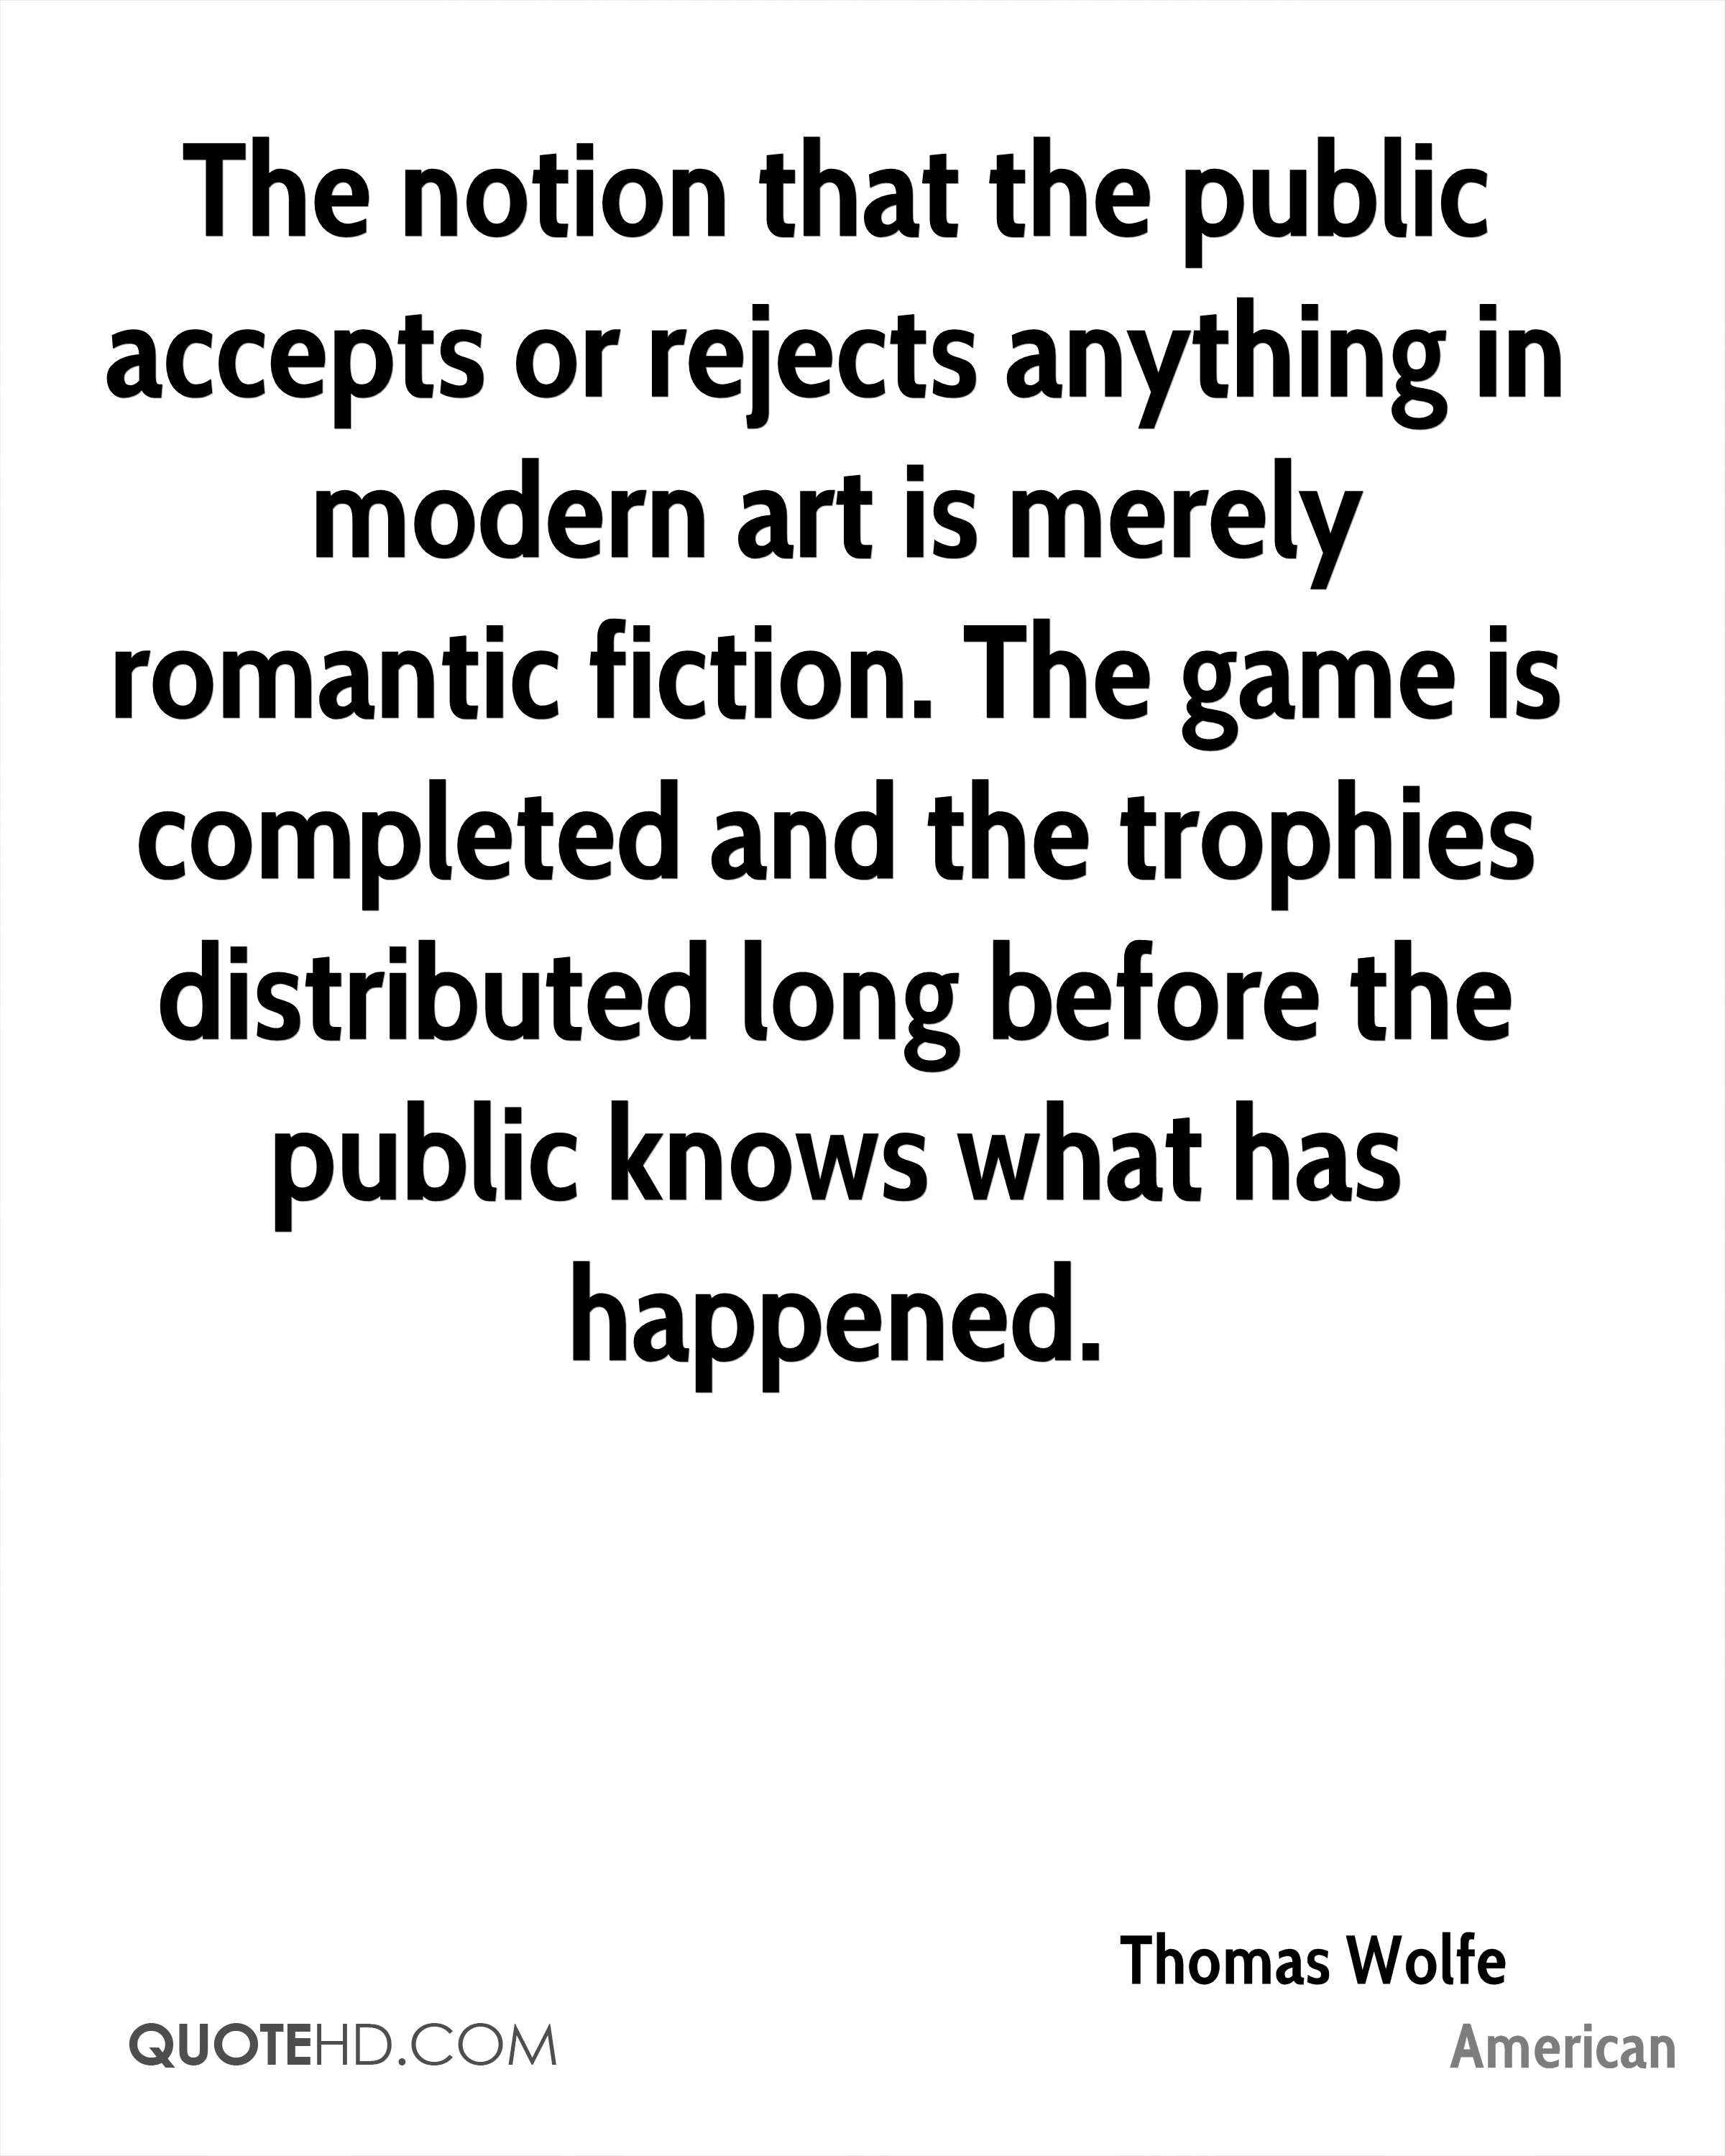 The notion that the public accepts or rejects anything in modern art is merely romantic fiction. The game is completed and the trophies distributed long before the public knows what has happened.